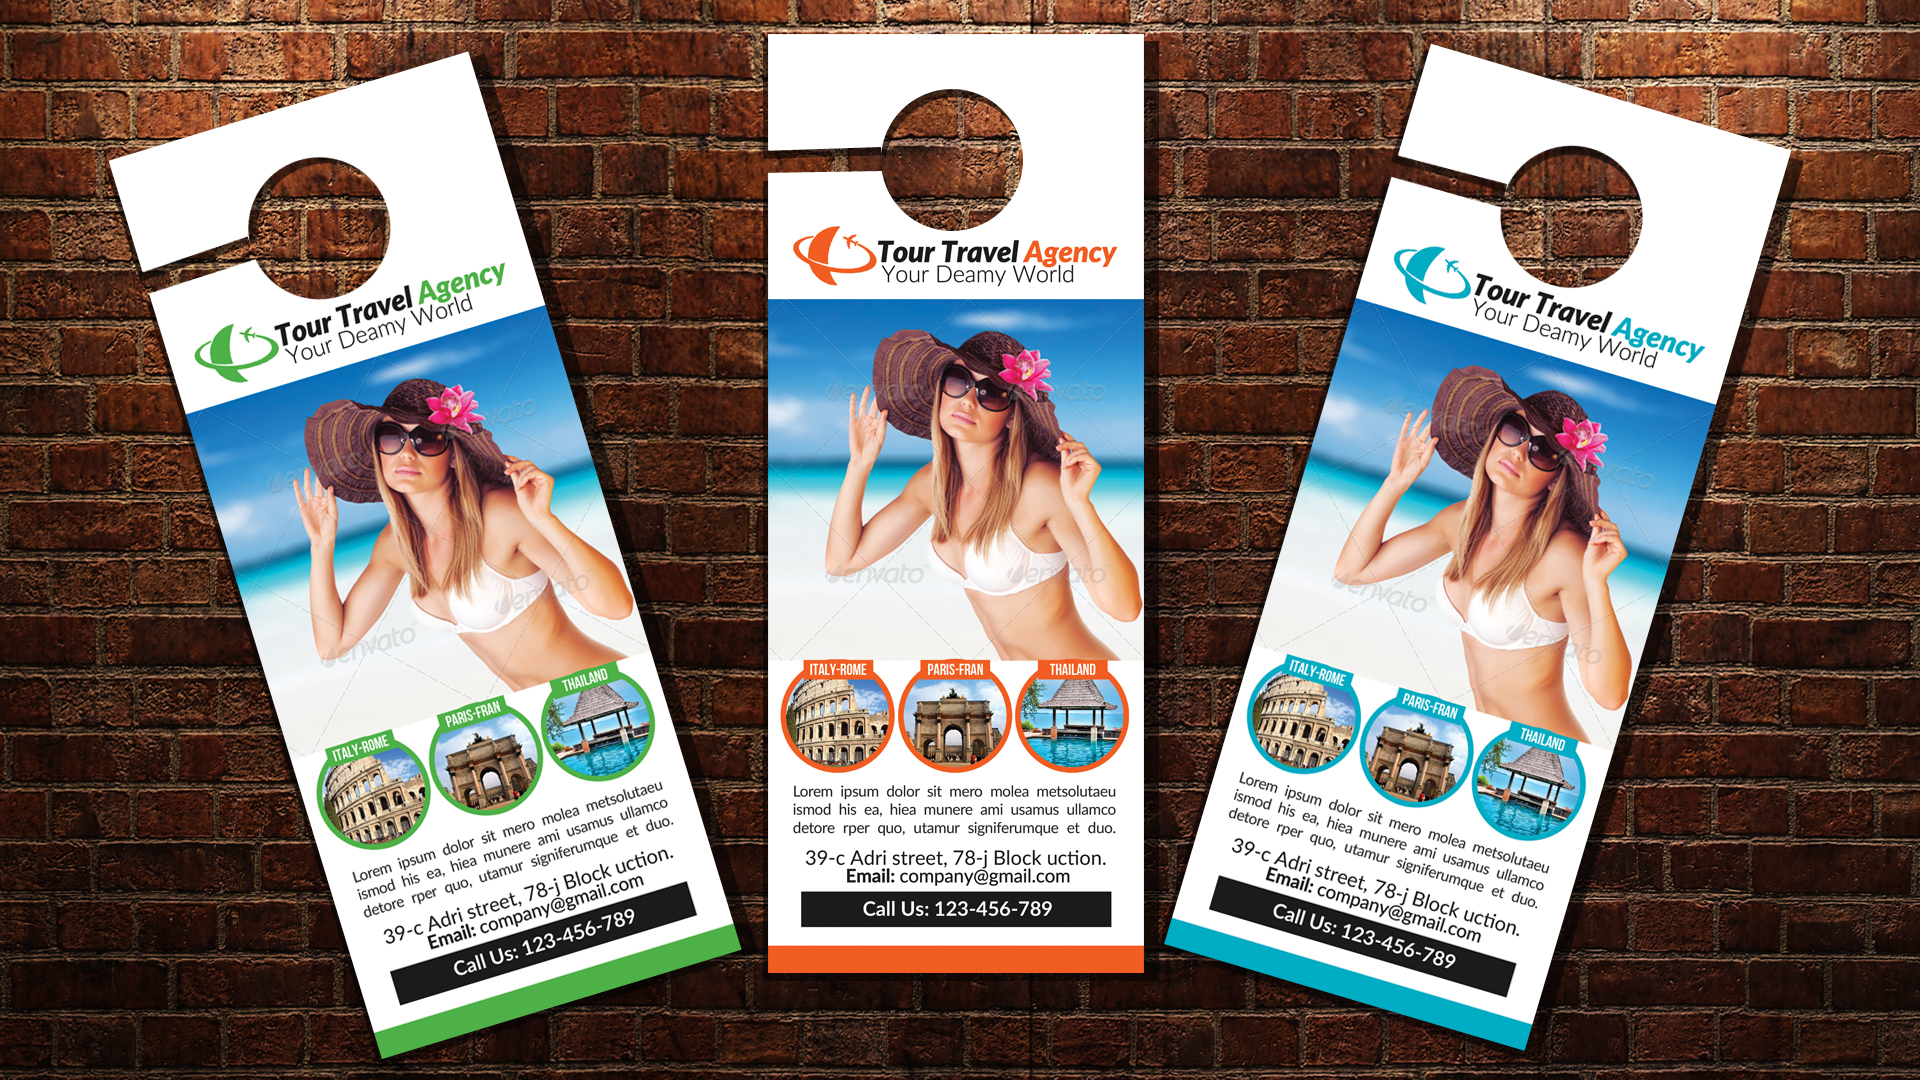 Travel & Tour Door Hangers example image 3